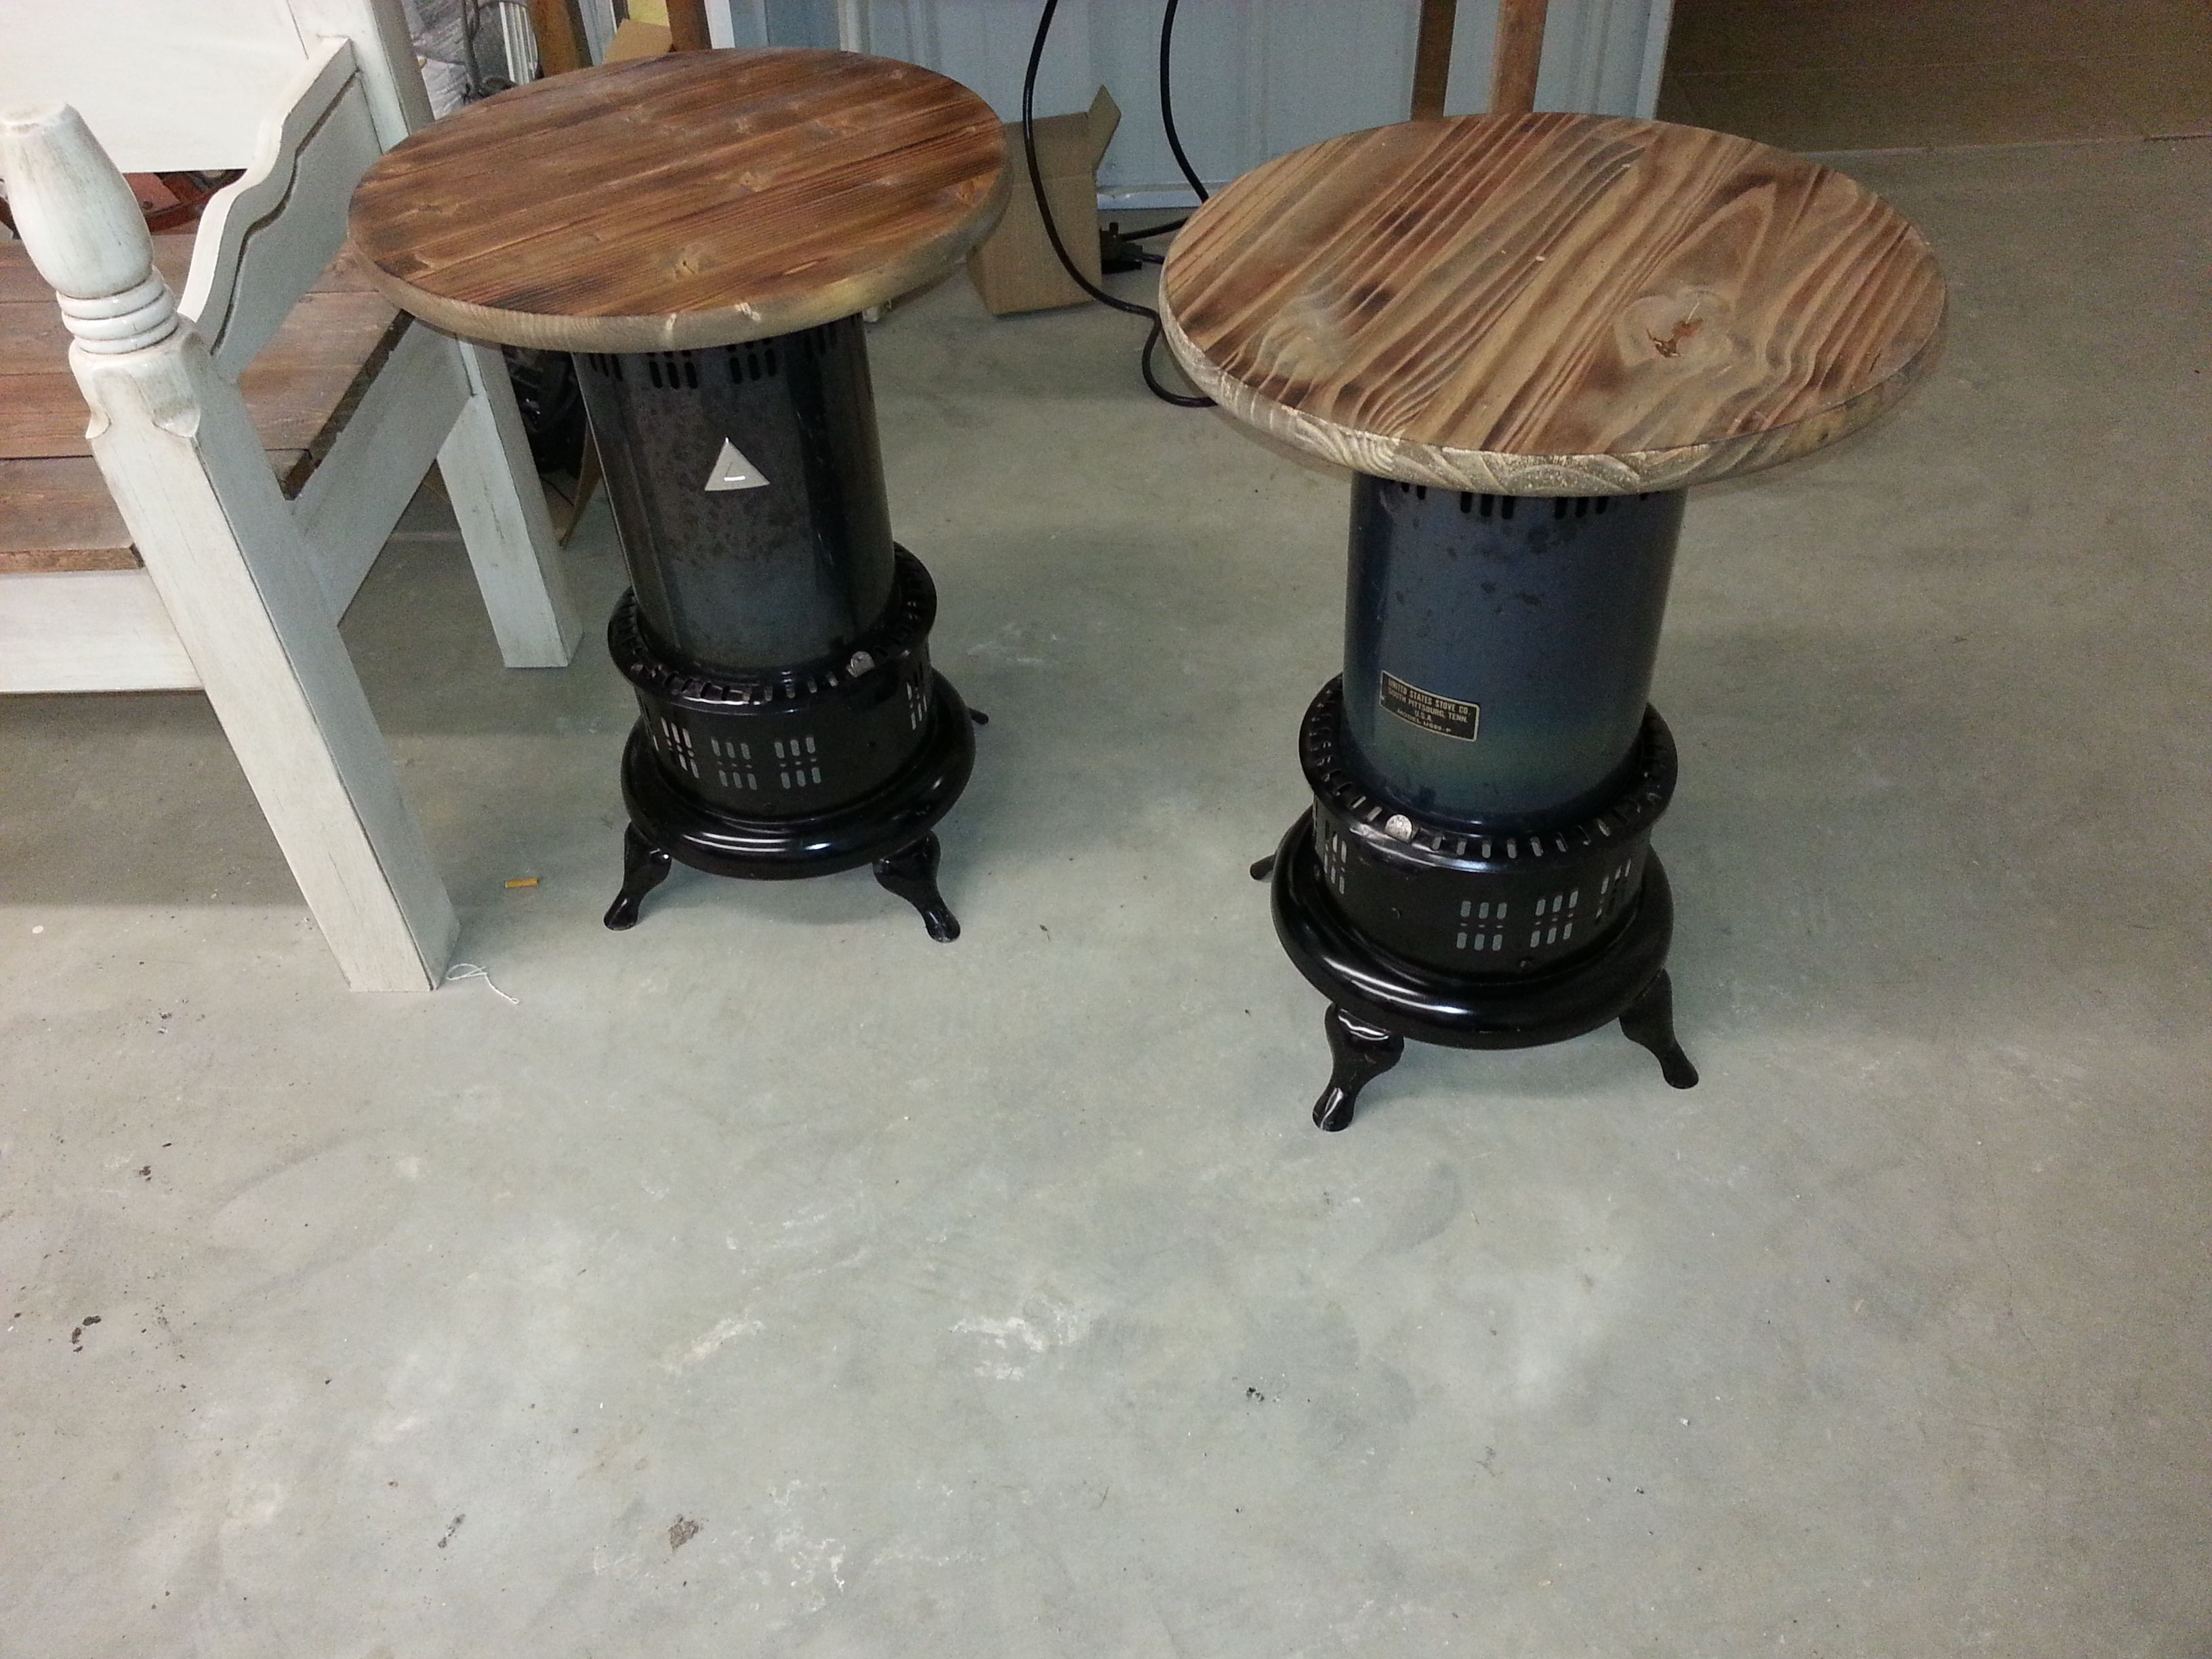 New Tables Made From Old Kerosene Heaters Reclaimed To